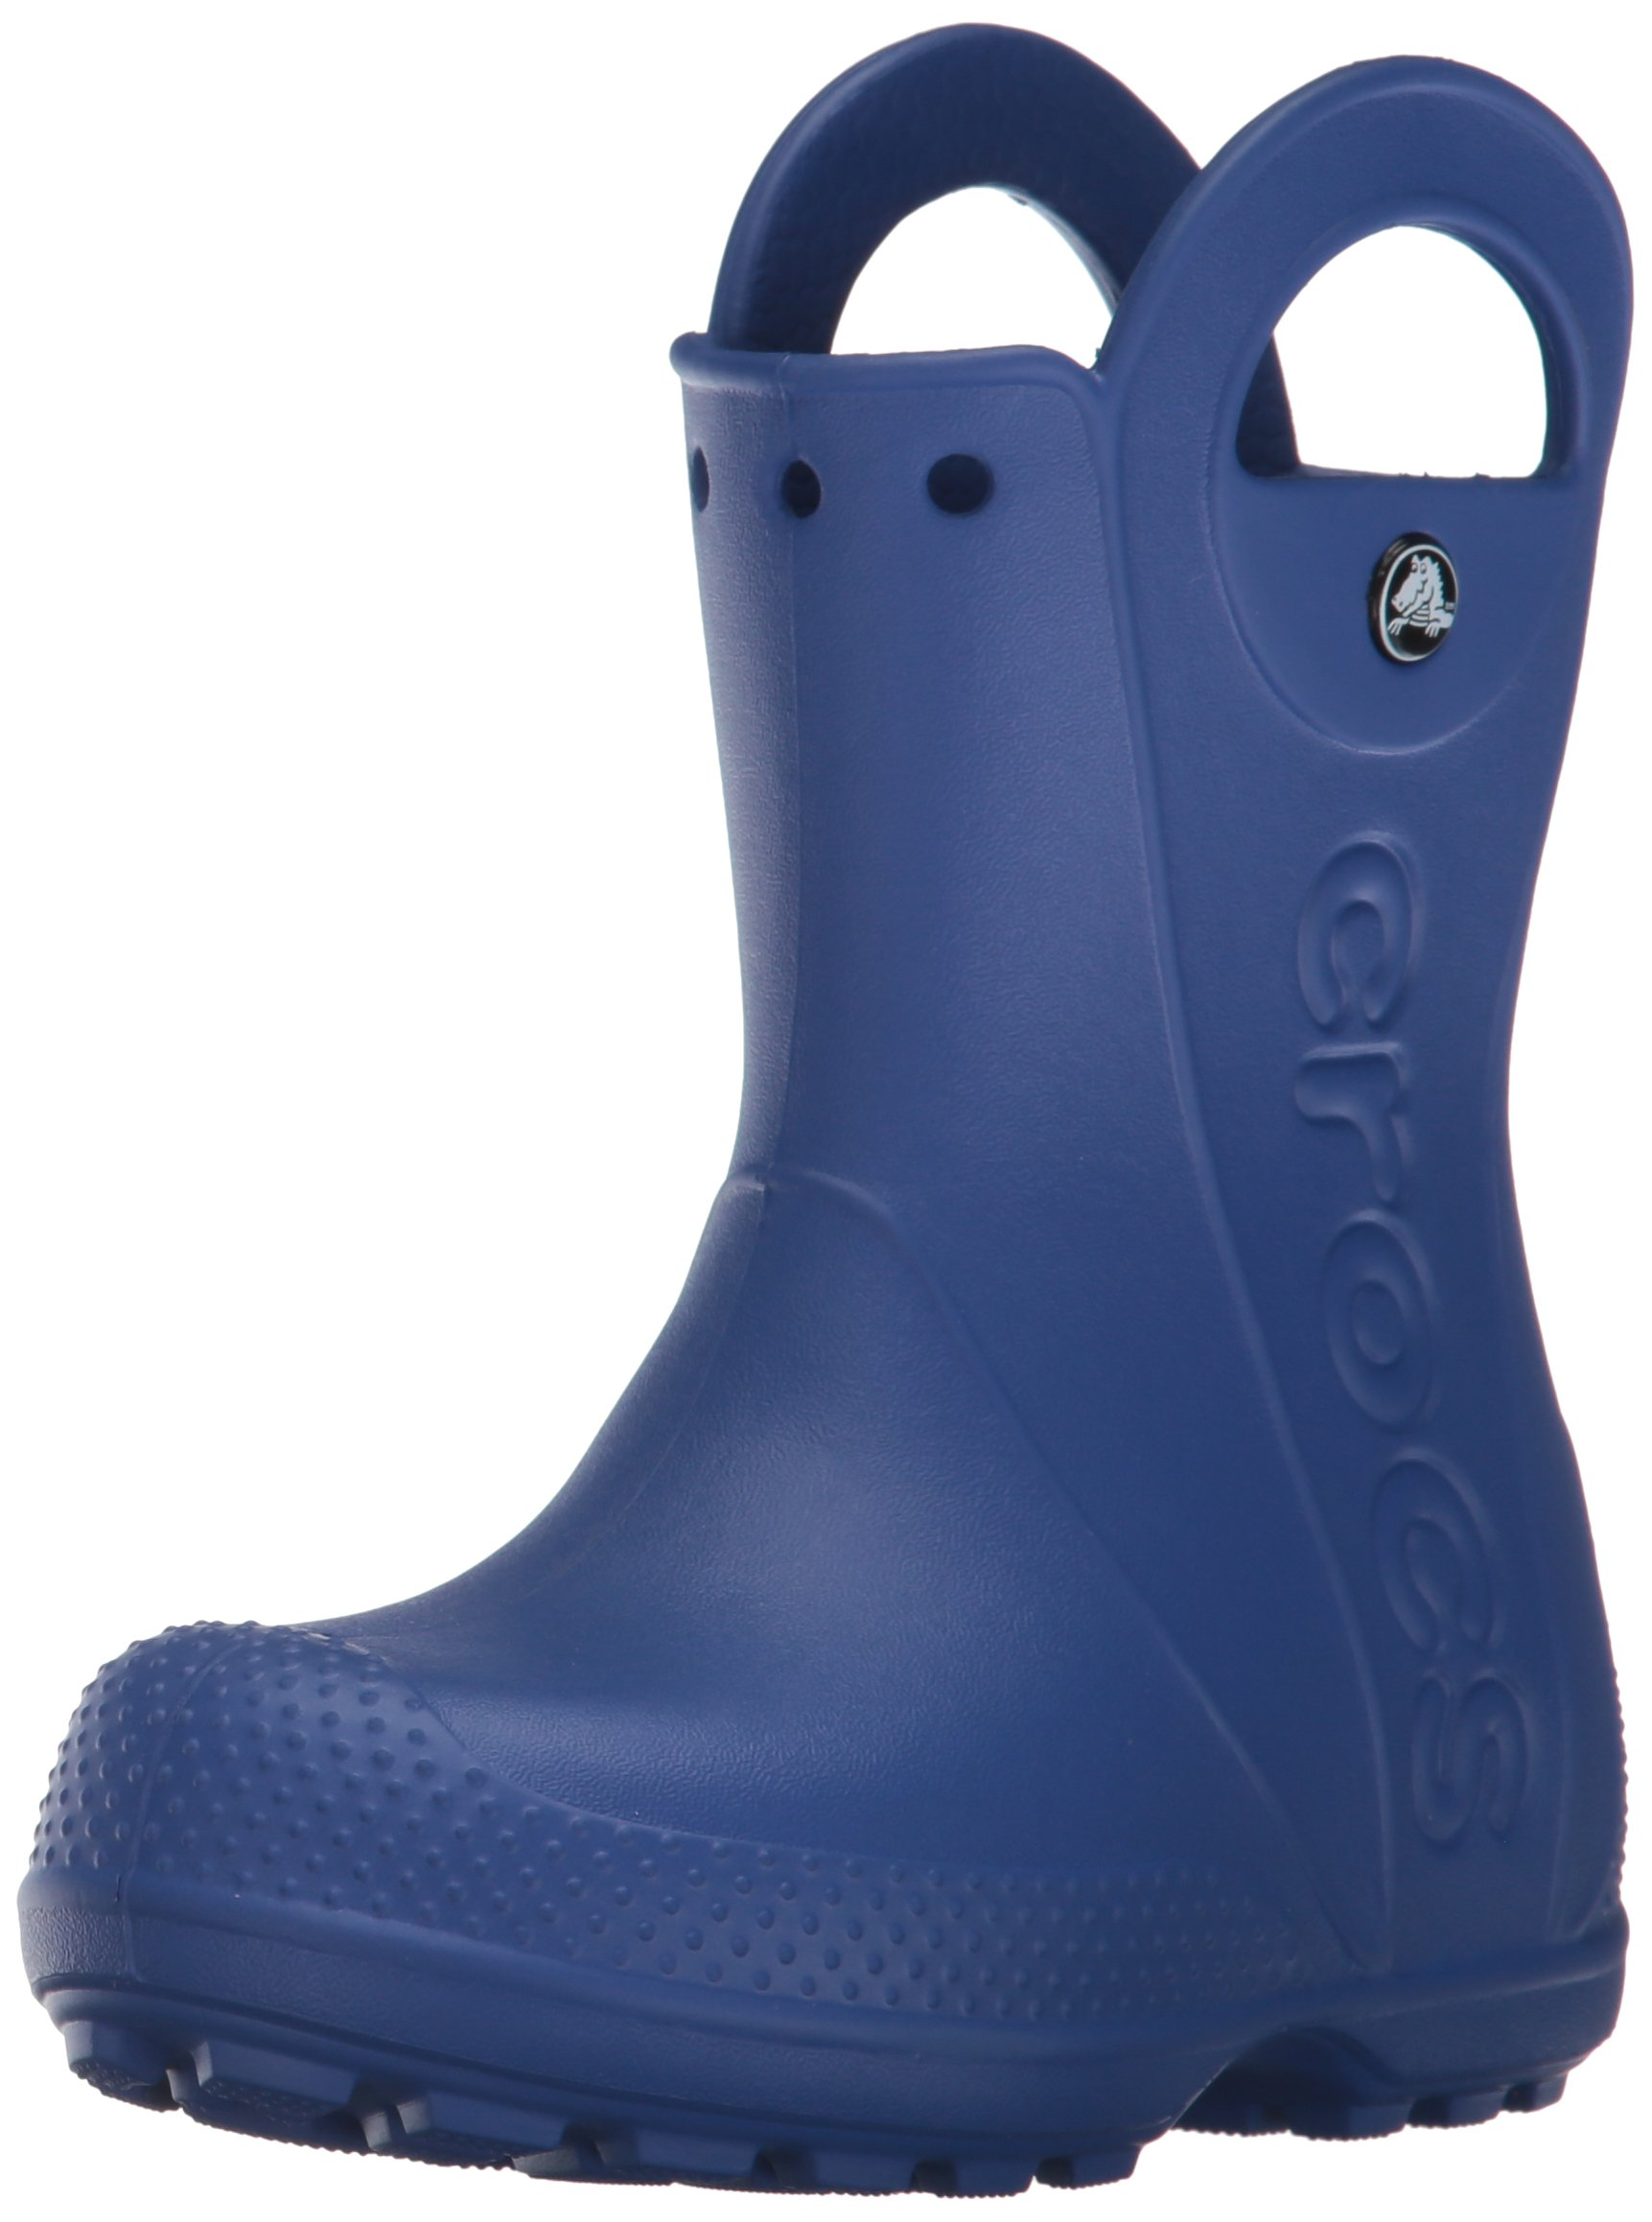 Crocs Kids' Handle It Boot,Cerulean Blue,7 M US Toddler